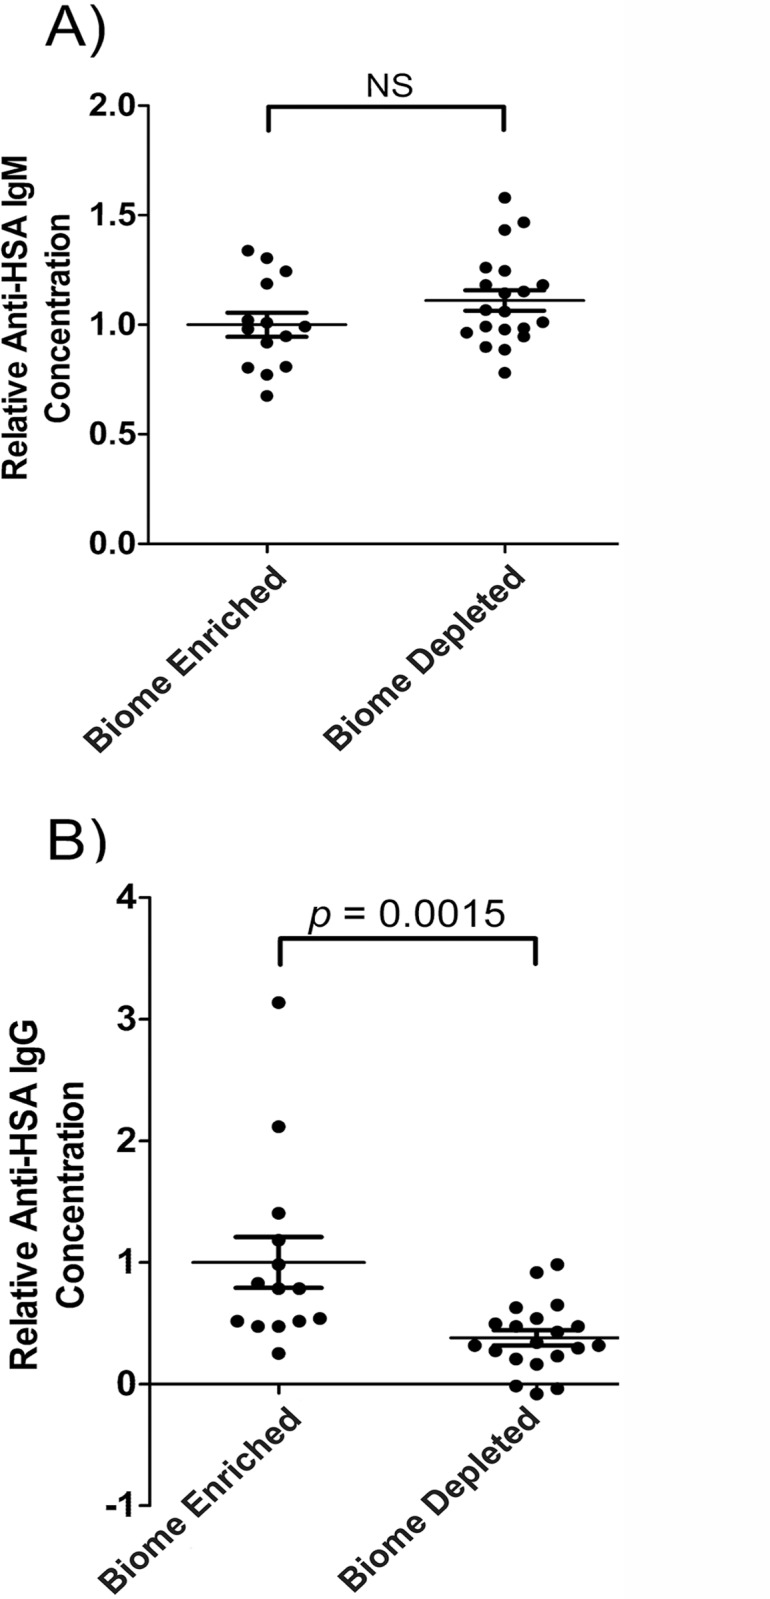 Natural anti-human serum albumin antibody levels in the serum of biome depleted (n = 20) and biome enriched (n = 15) rats. The relative concentration of antibody was determined by ELISA as described in the Methods. Relative levels of (A) IgM and (B) IgG are shown. Binding to human serum albumin (HSA) was used as a measure of reactivity toward a xenogeneic antigen for which the animals lacked previous exposure. The means, standard errors, and the p -values associated with comparing data from biome depleted and biome enriched animals using a t-test are shown. (NS = not significant)